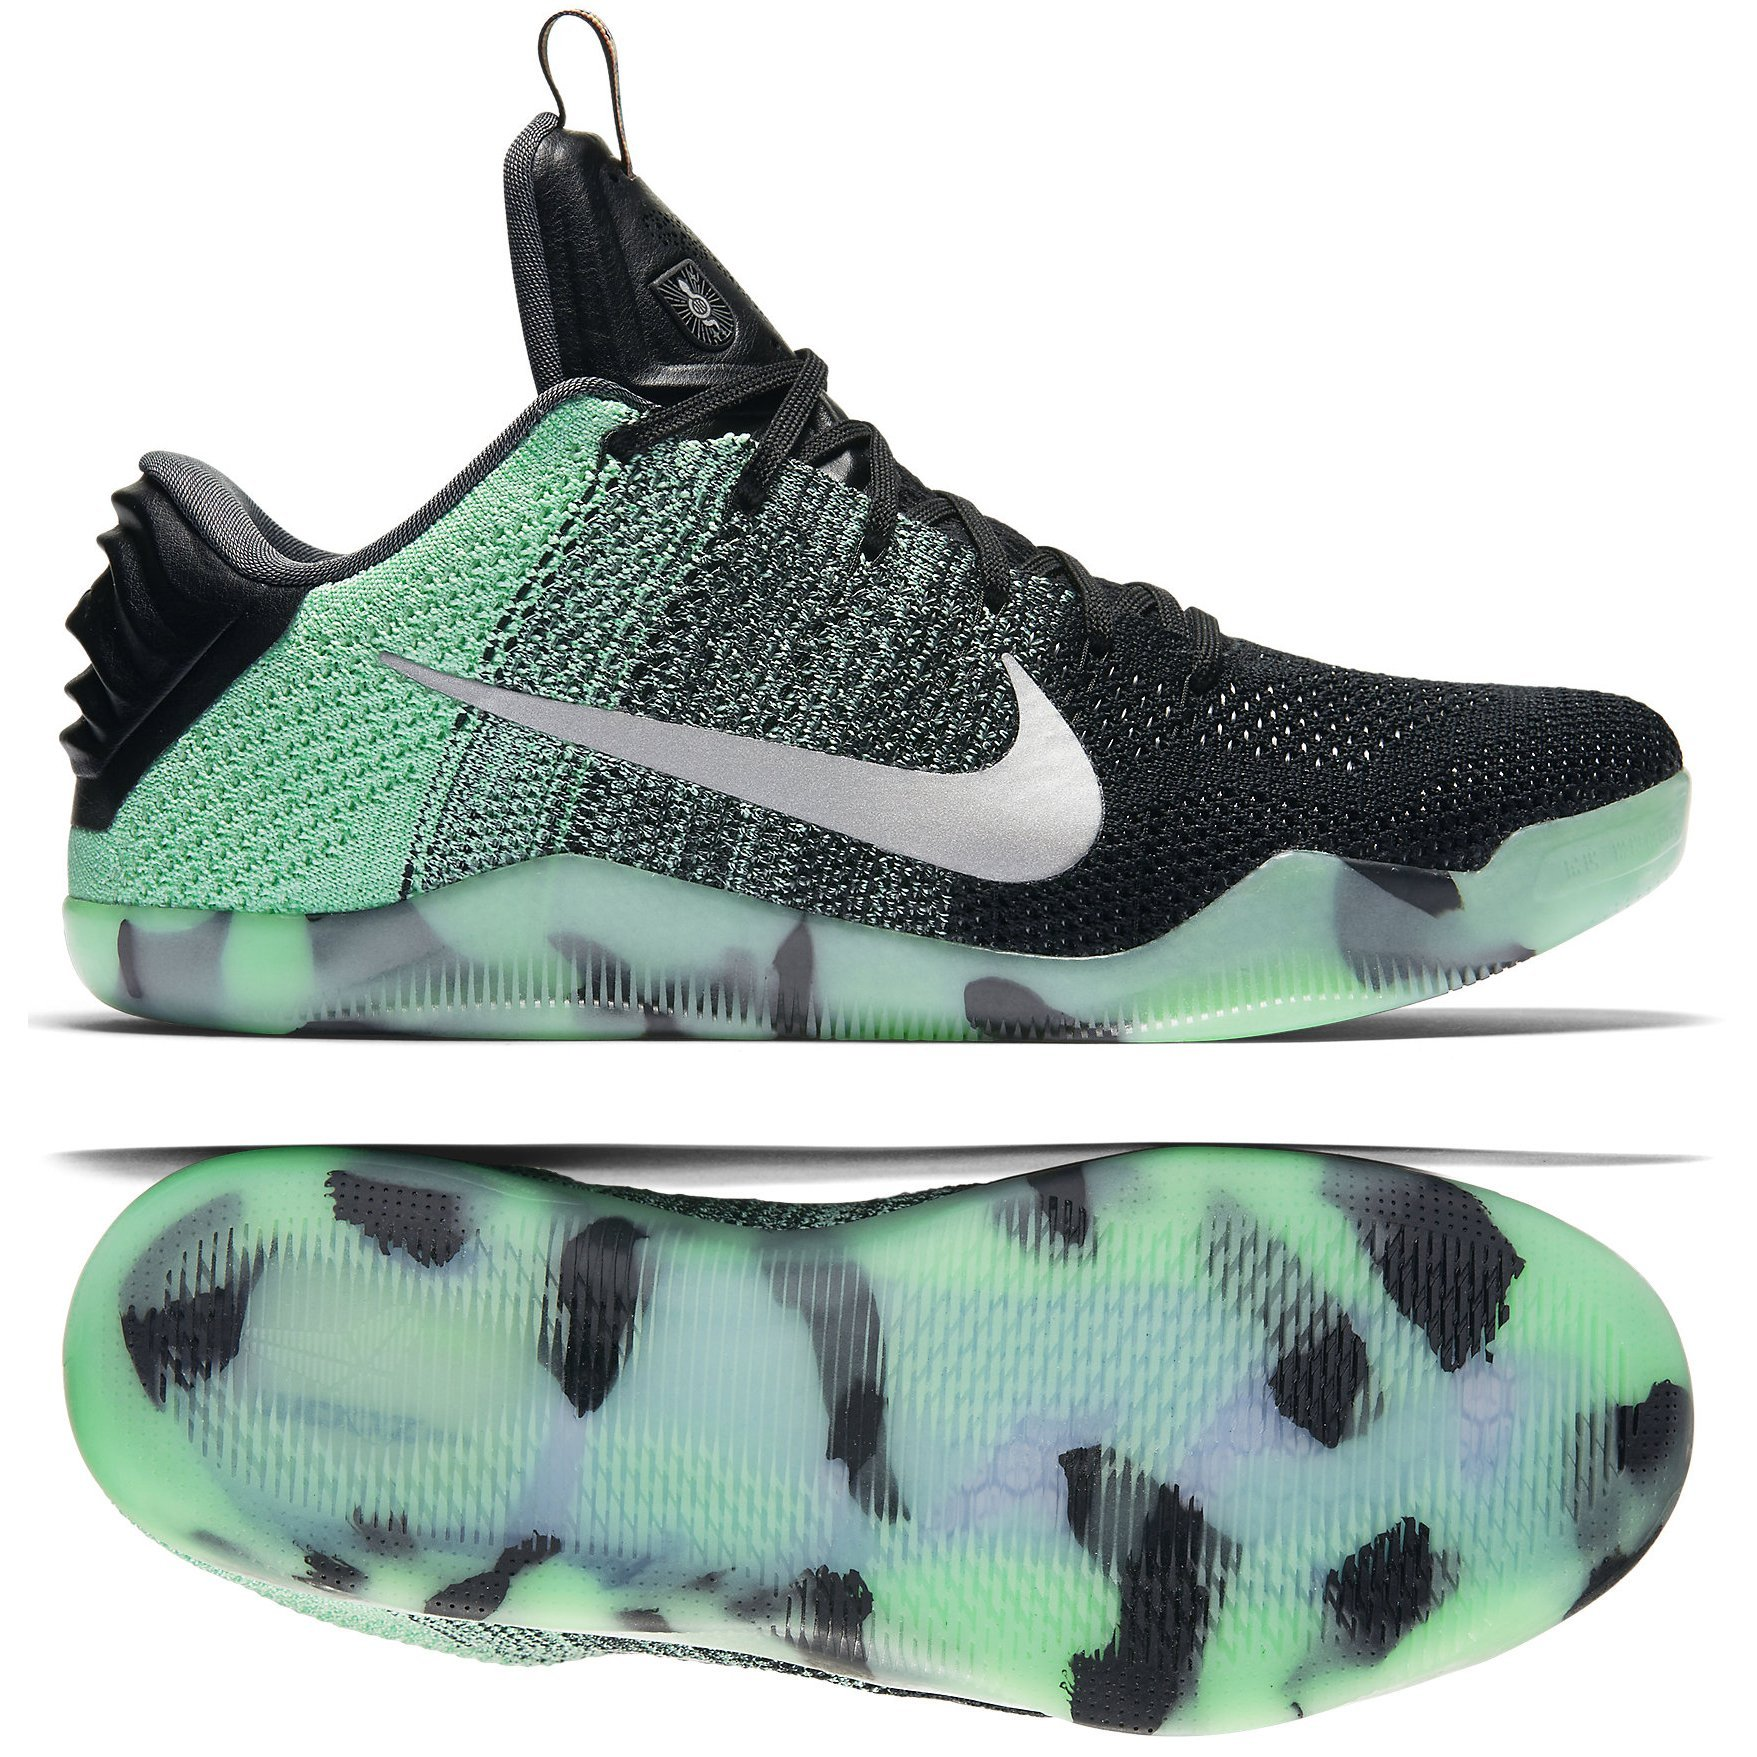 super popular a7a8b 1e454 Galleon - NIKE Kobe XI Elite Low All Star 11 Men Basketball Shoes New Green  Glow Black